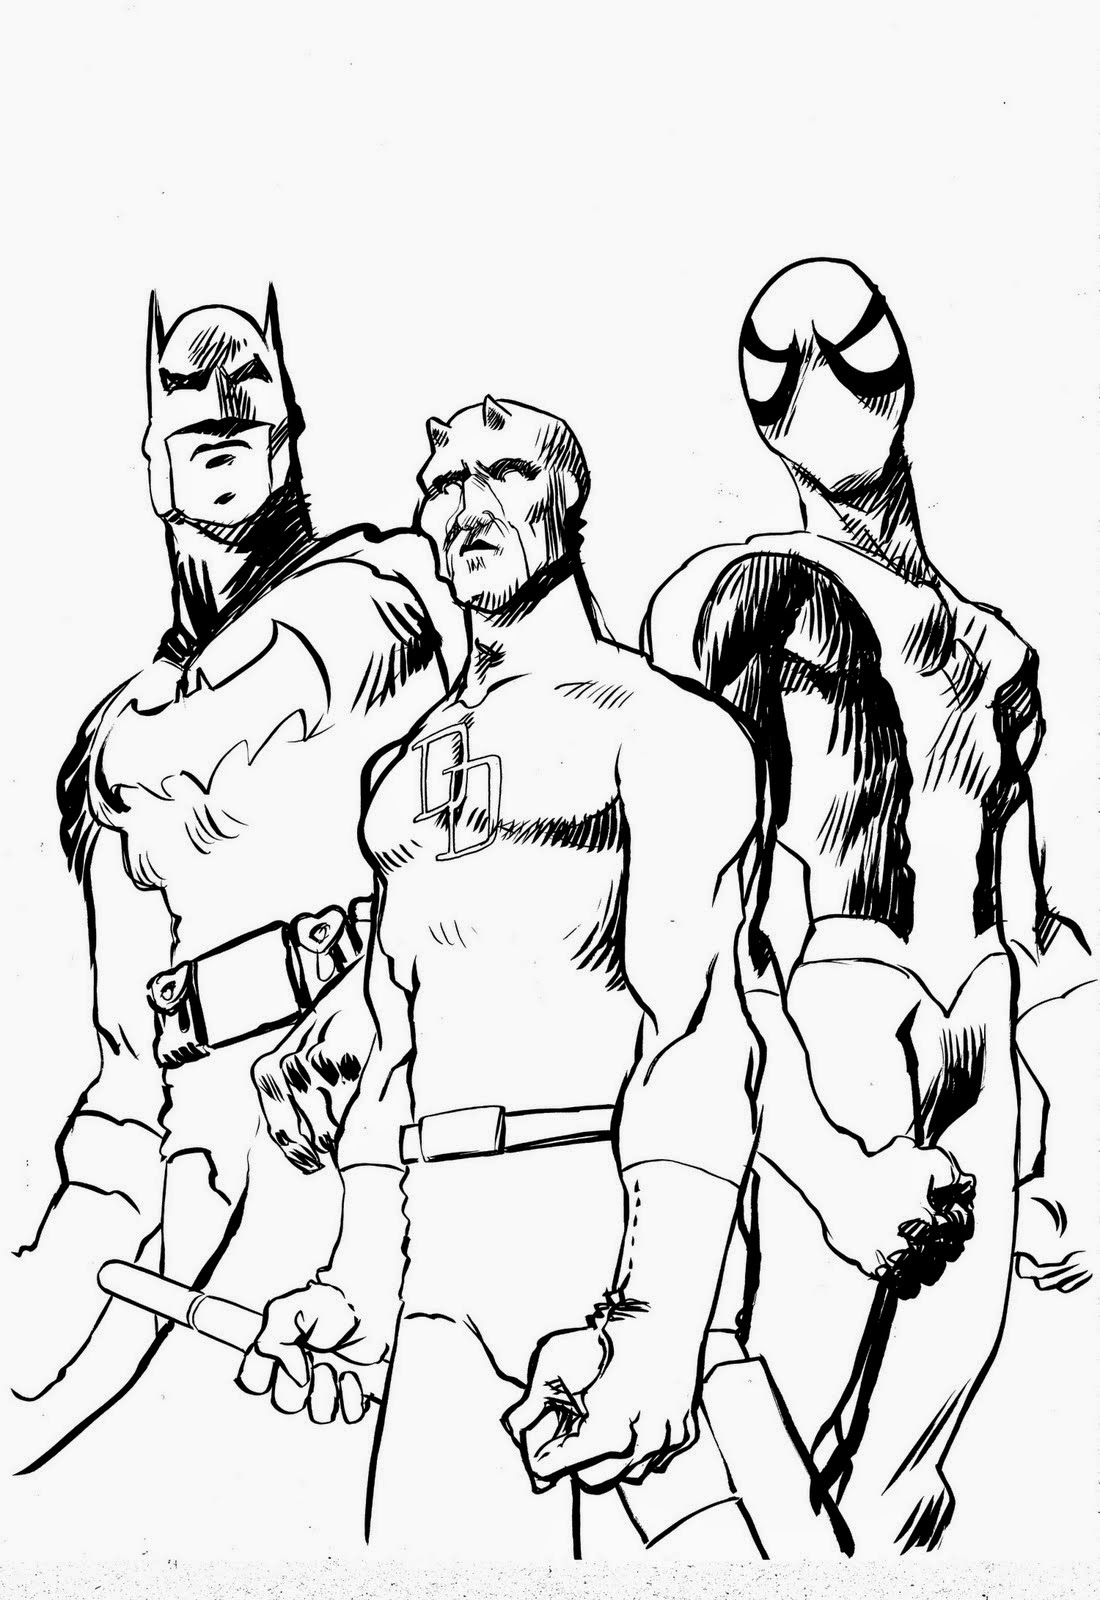 Coloriage spiderman et batman coloriage en ligne - Coloriage spiderman imprimer ...